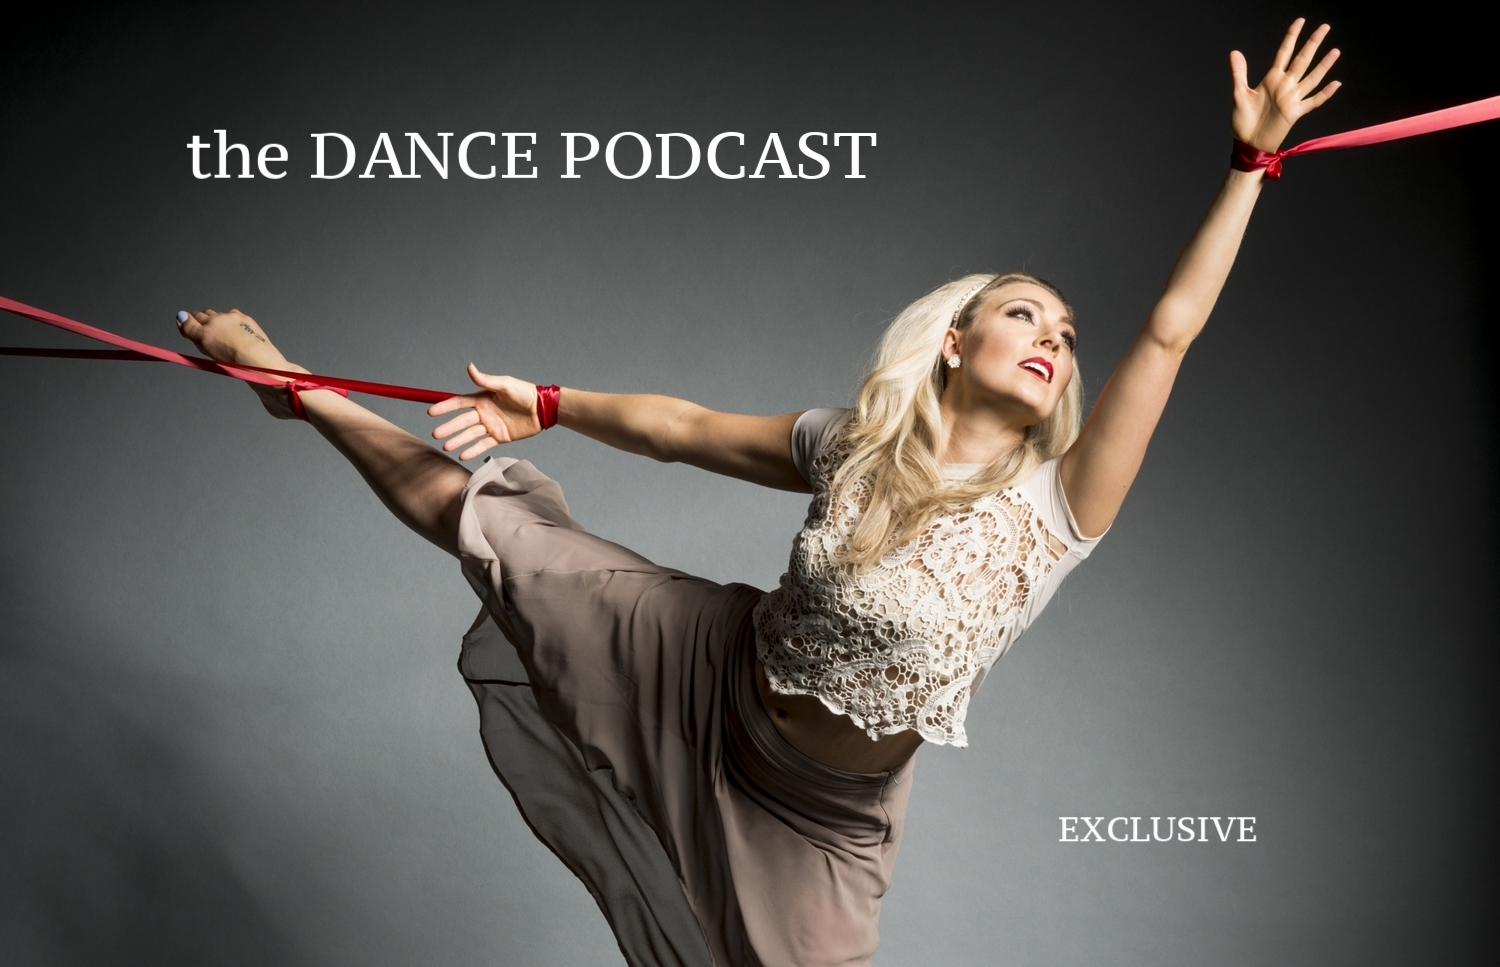 the Dance Podcast - Exclusive Deal